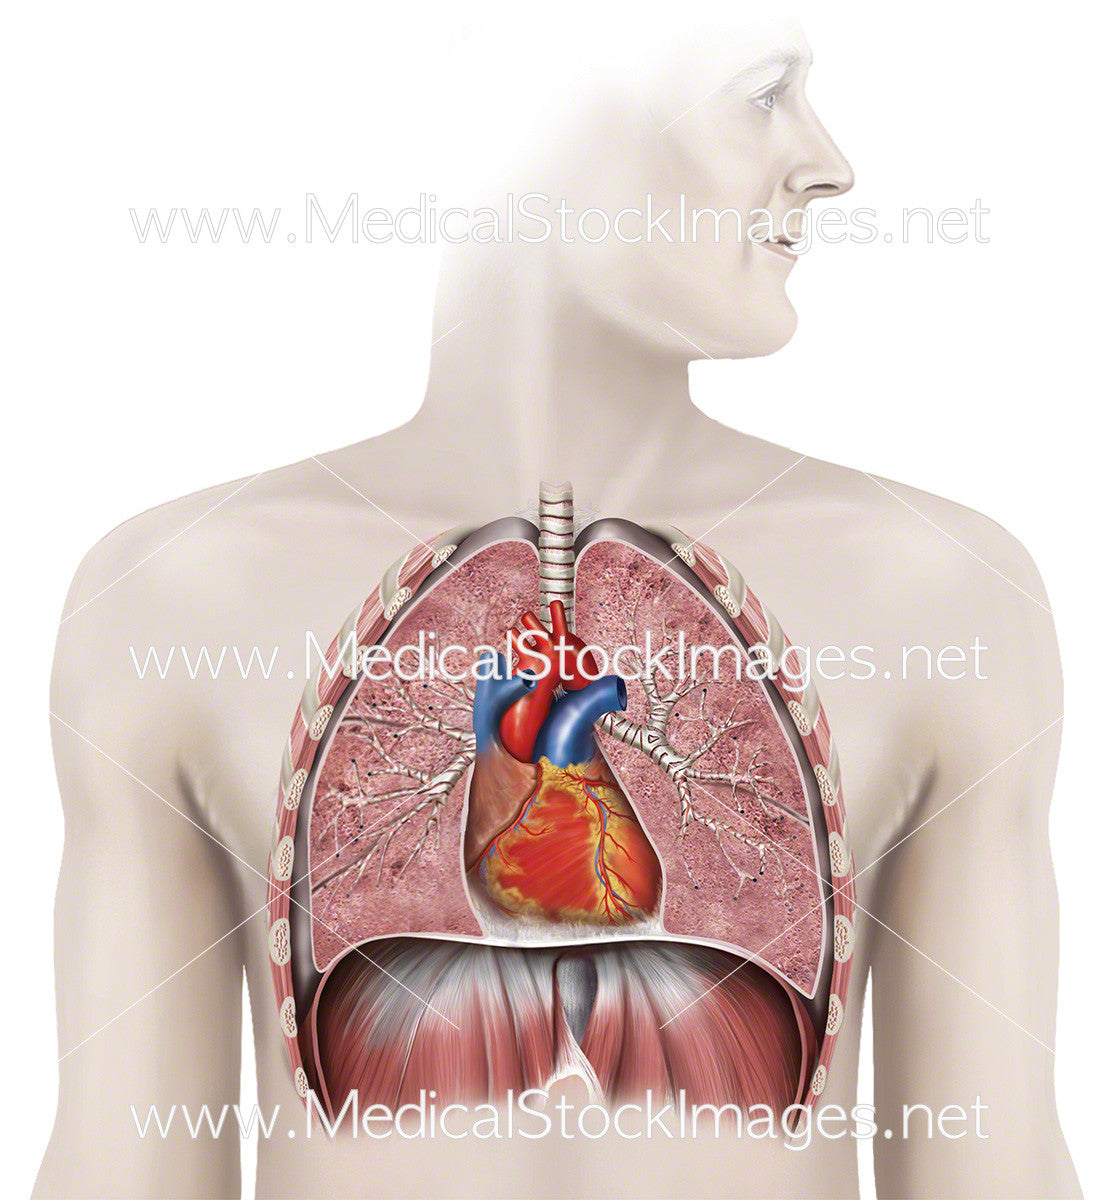 Healthy Heart and Lungs in situ – Medical Stock Images Company